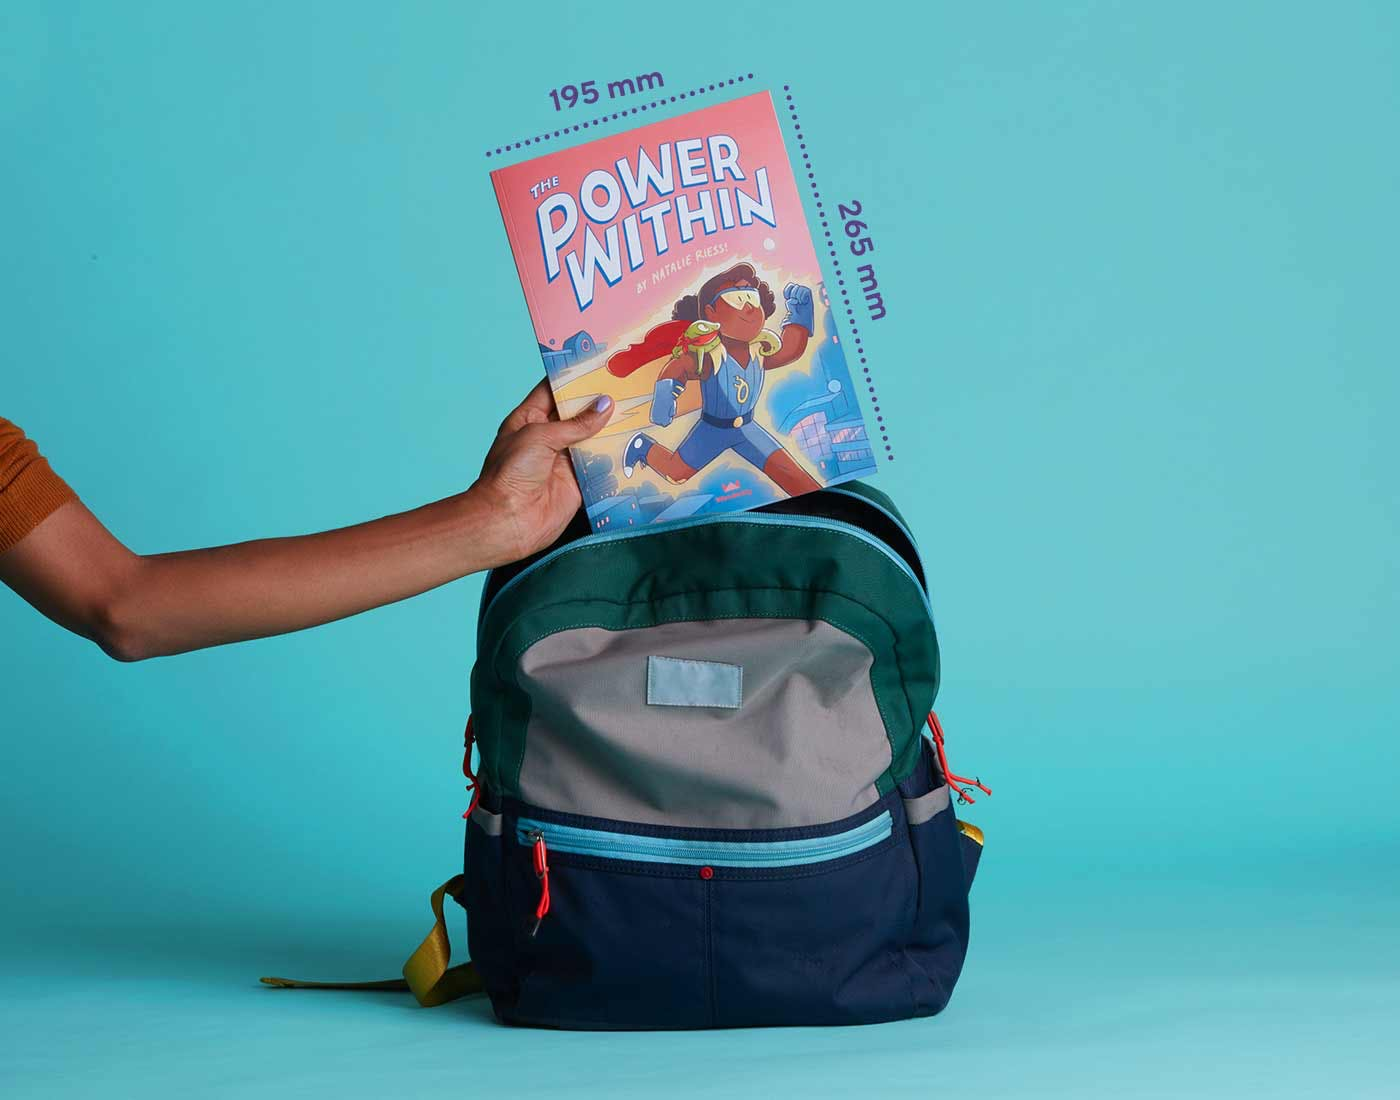 The Power Within book size specifications 195mm width by 265mm height